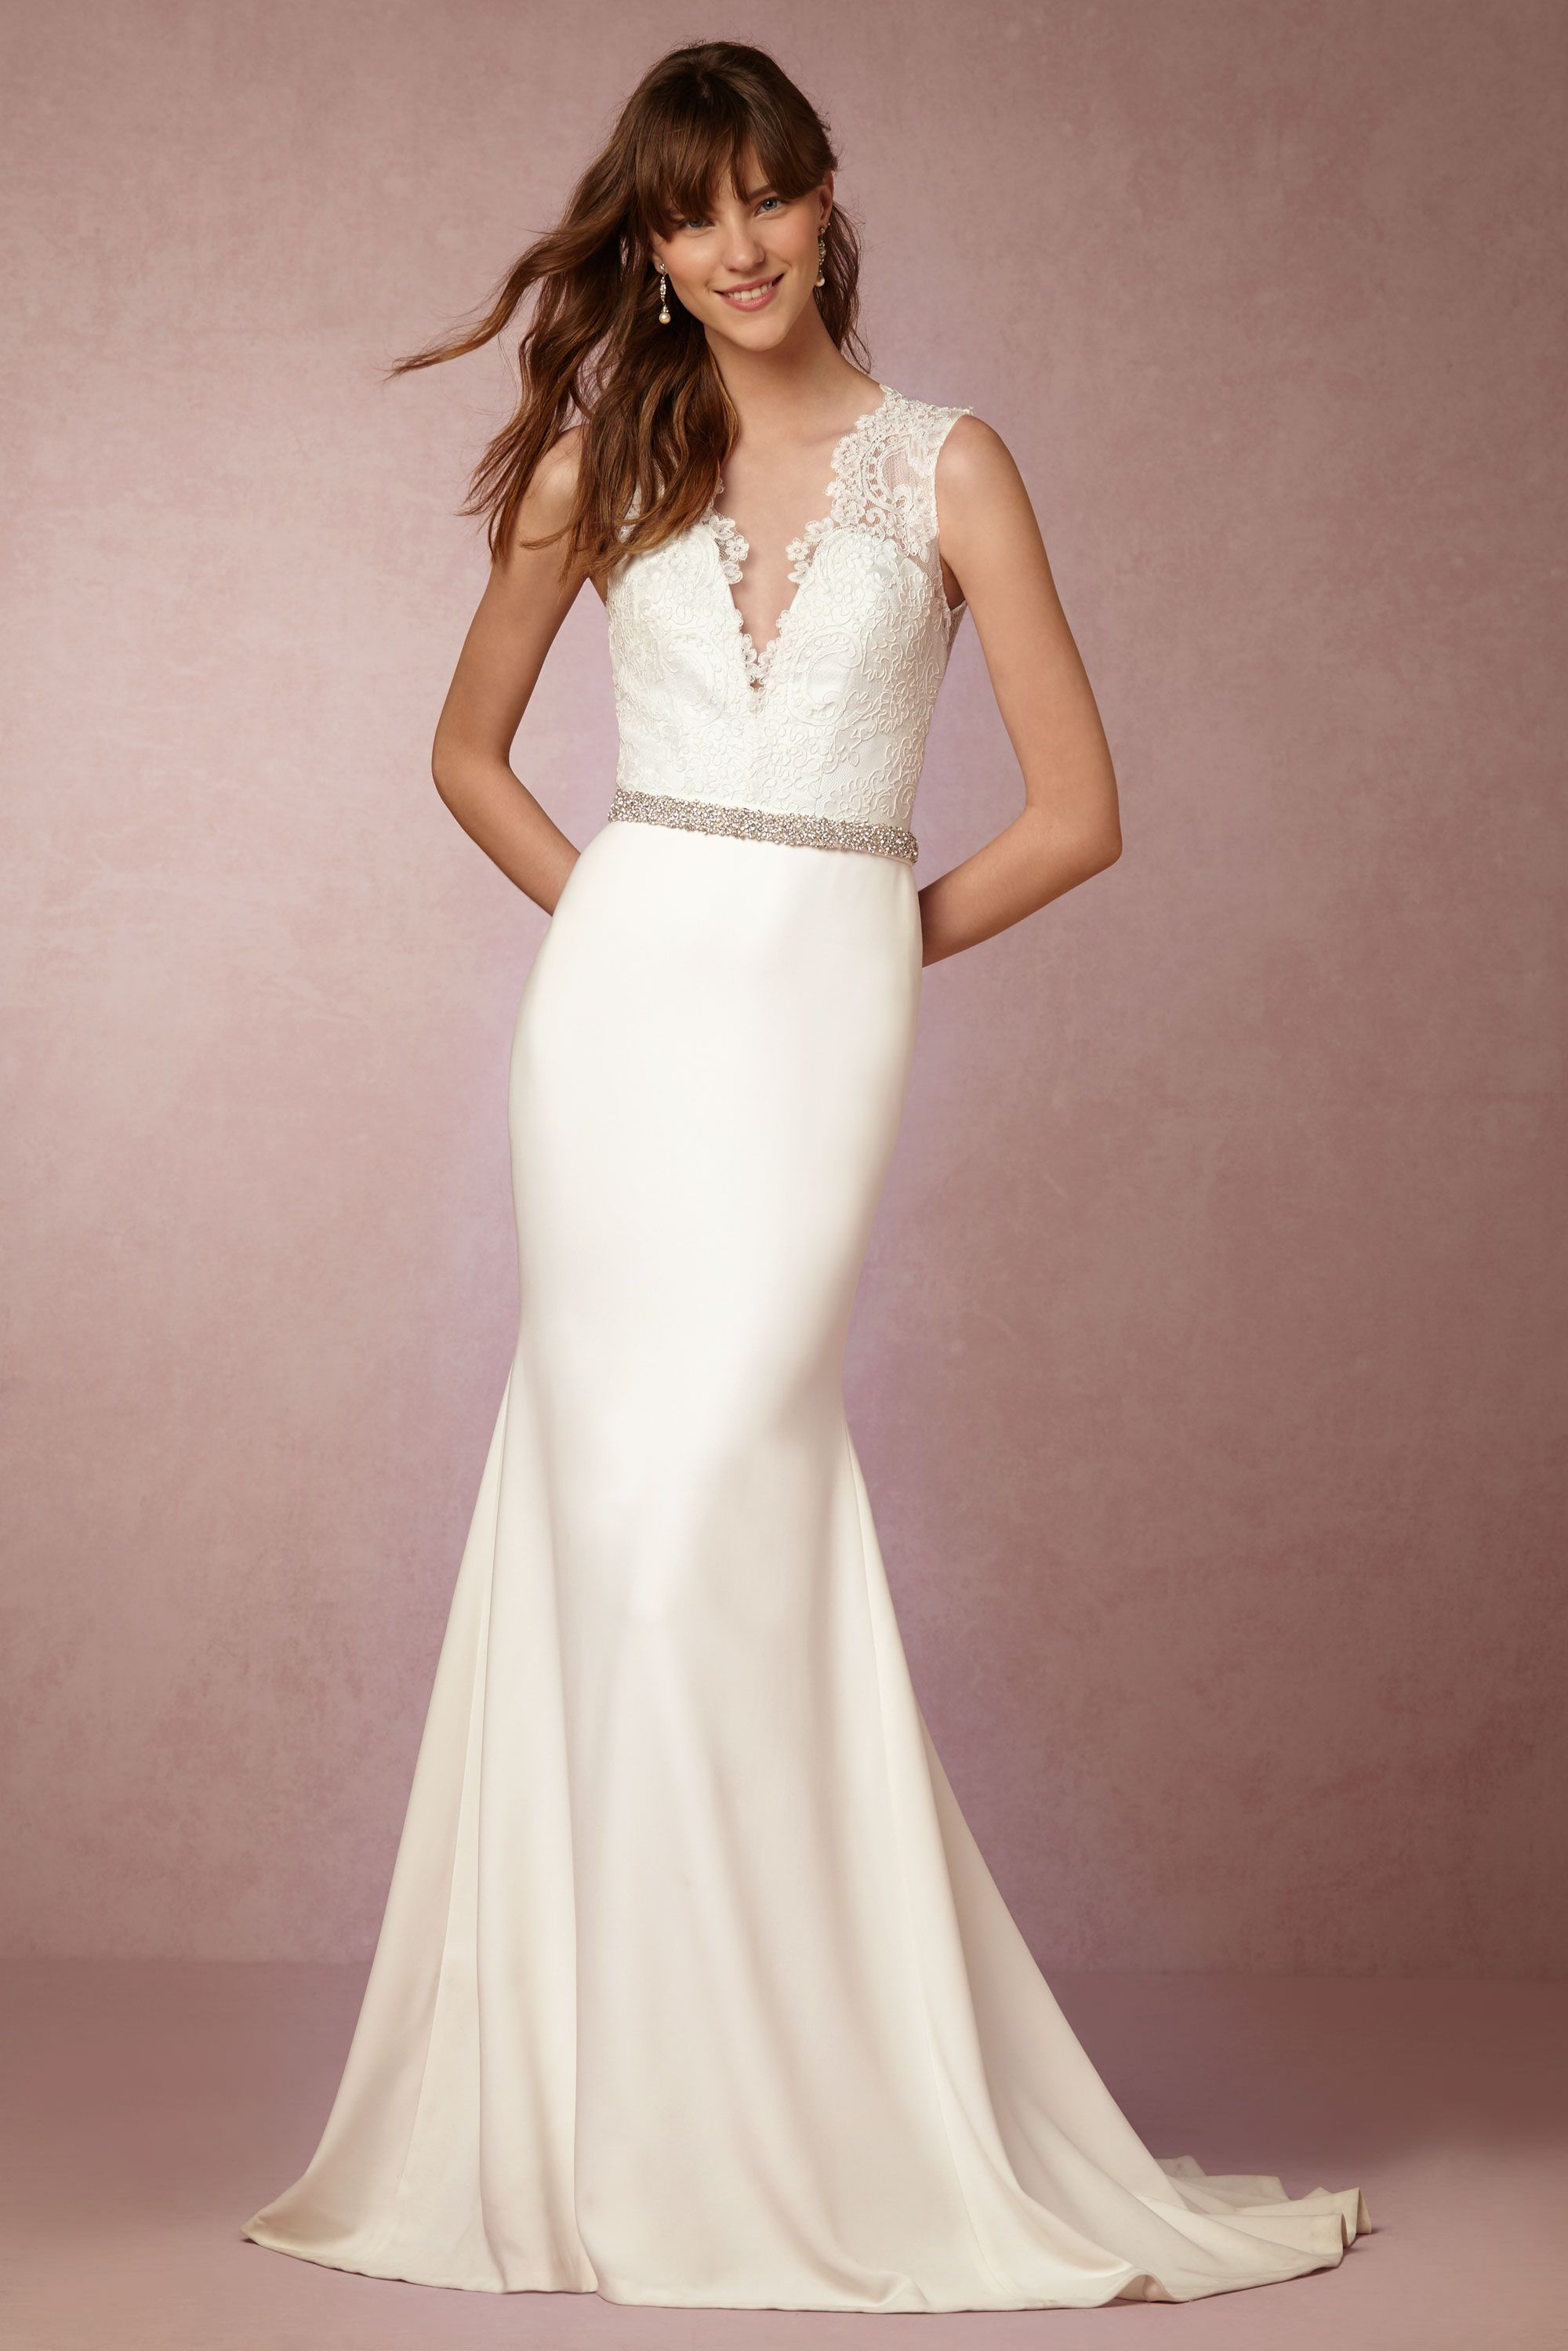 0b993e52c990 Maeve Gown from @BHLDN- add the tulle skirt | Personal Life ...